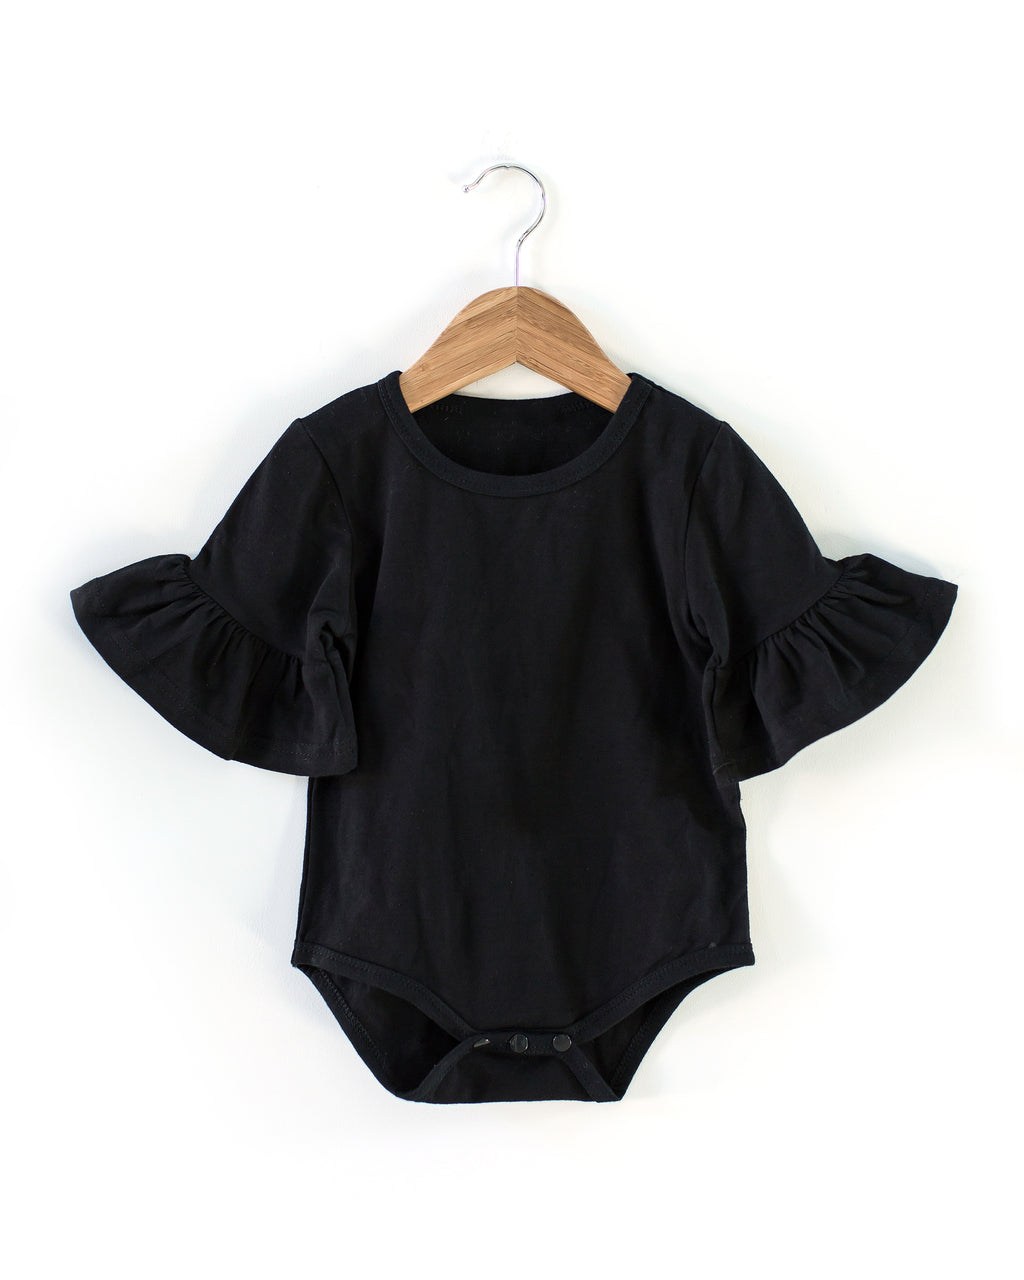 Annabelle Bodysuit in Black - Reverie Threads